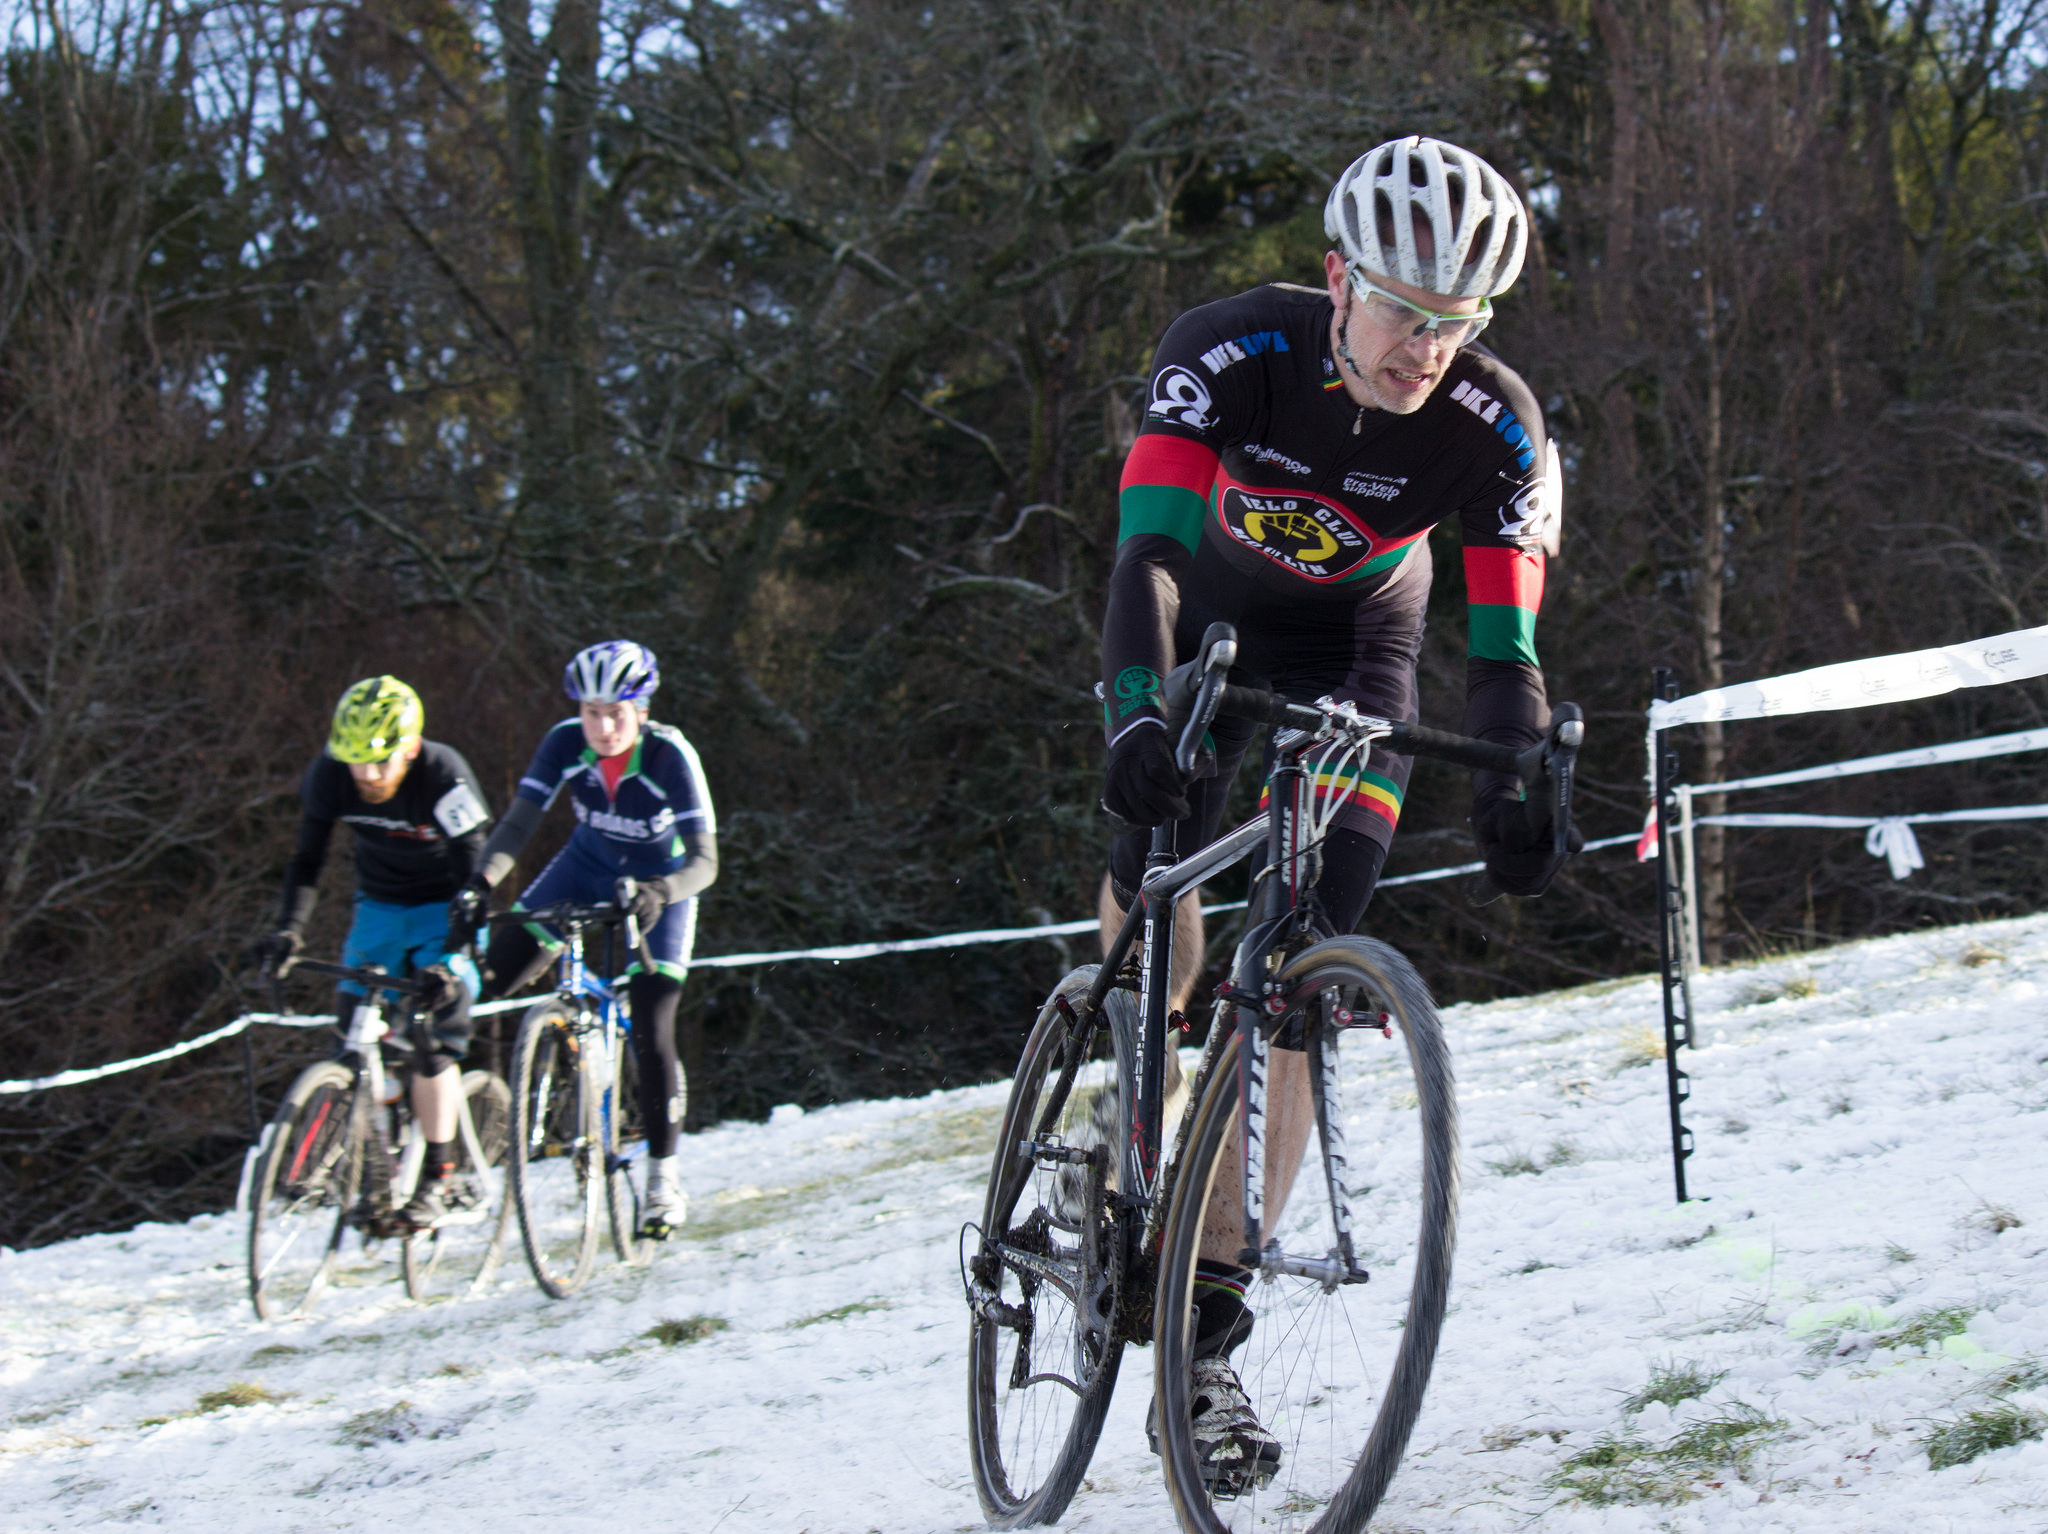 Turns out Niamh waters isn't the only member of her family to win this year. Fraser on his way to the win in the B-race at Rouen Glen. Photo: M. Young